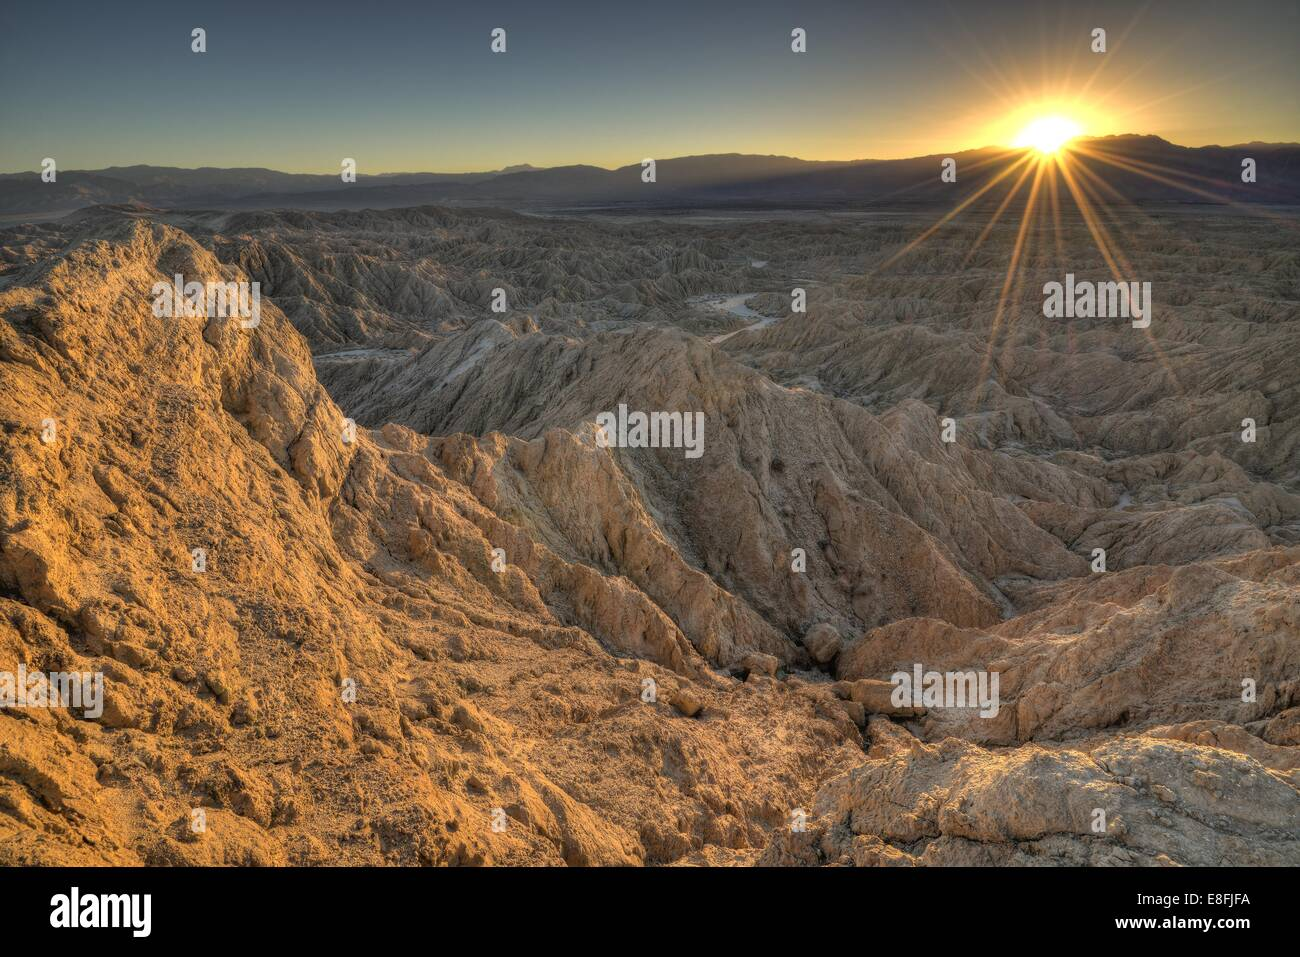 USA, California, Anza-Borrego Desert State Park, Landscape at sunset - Stock Image